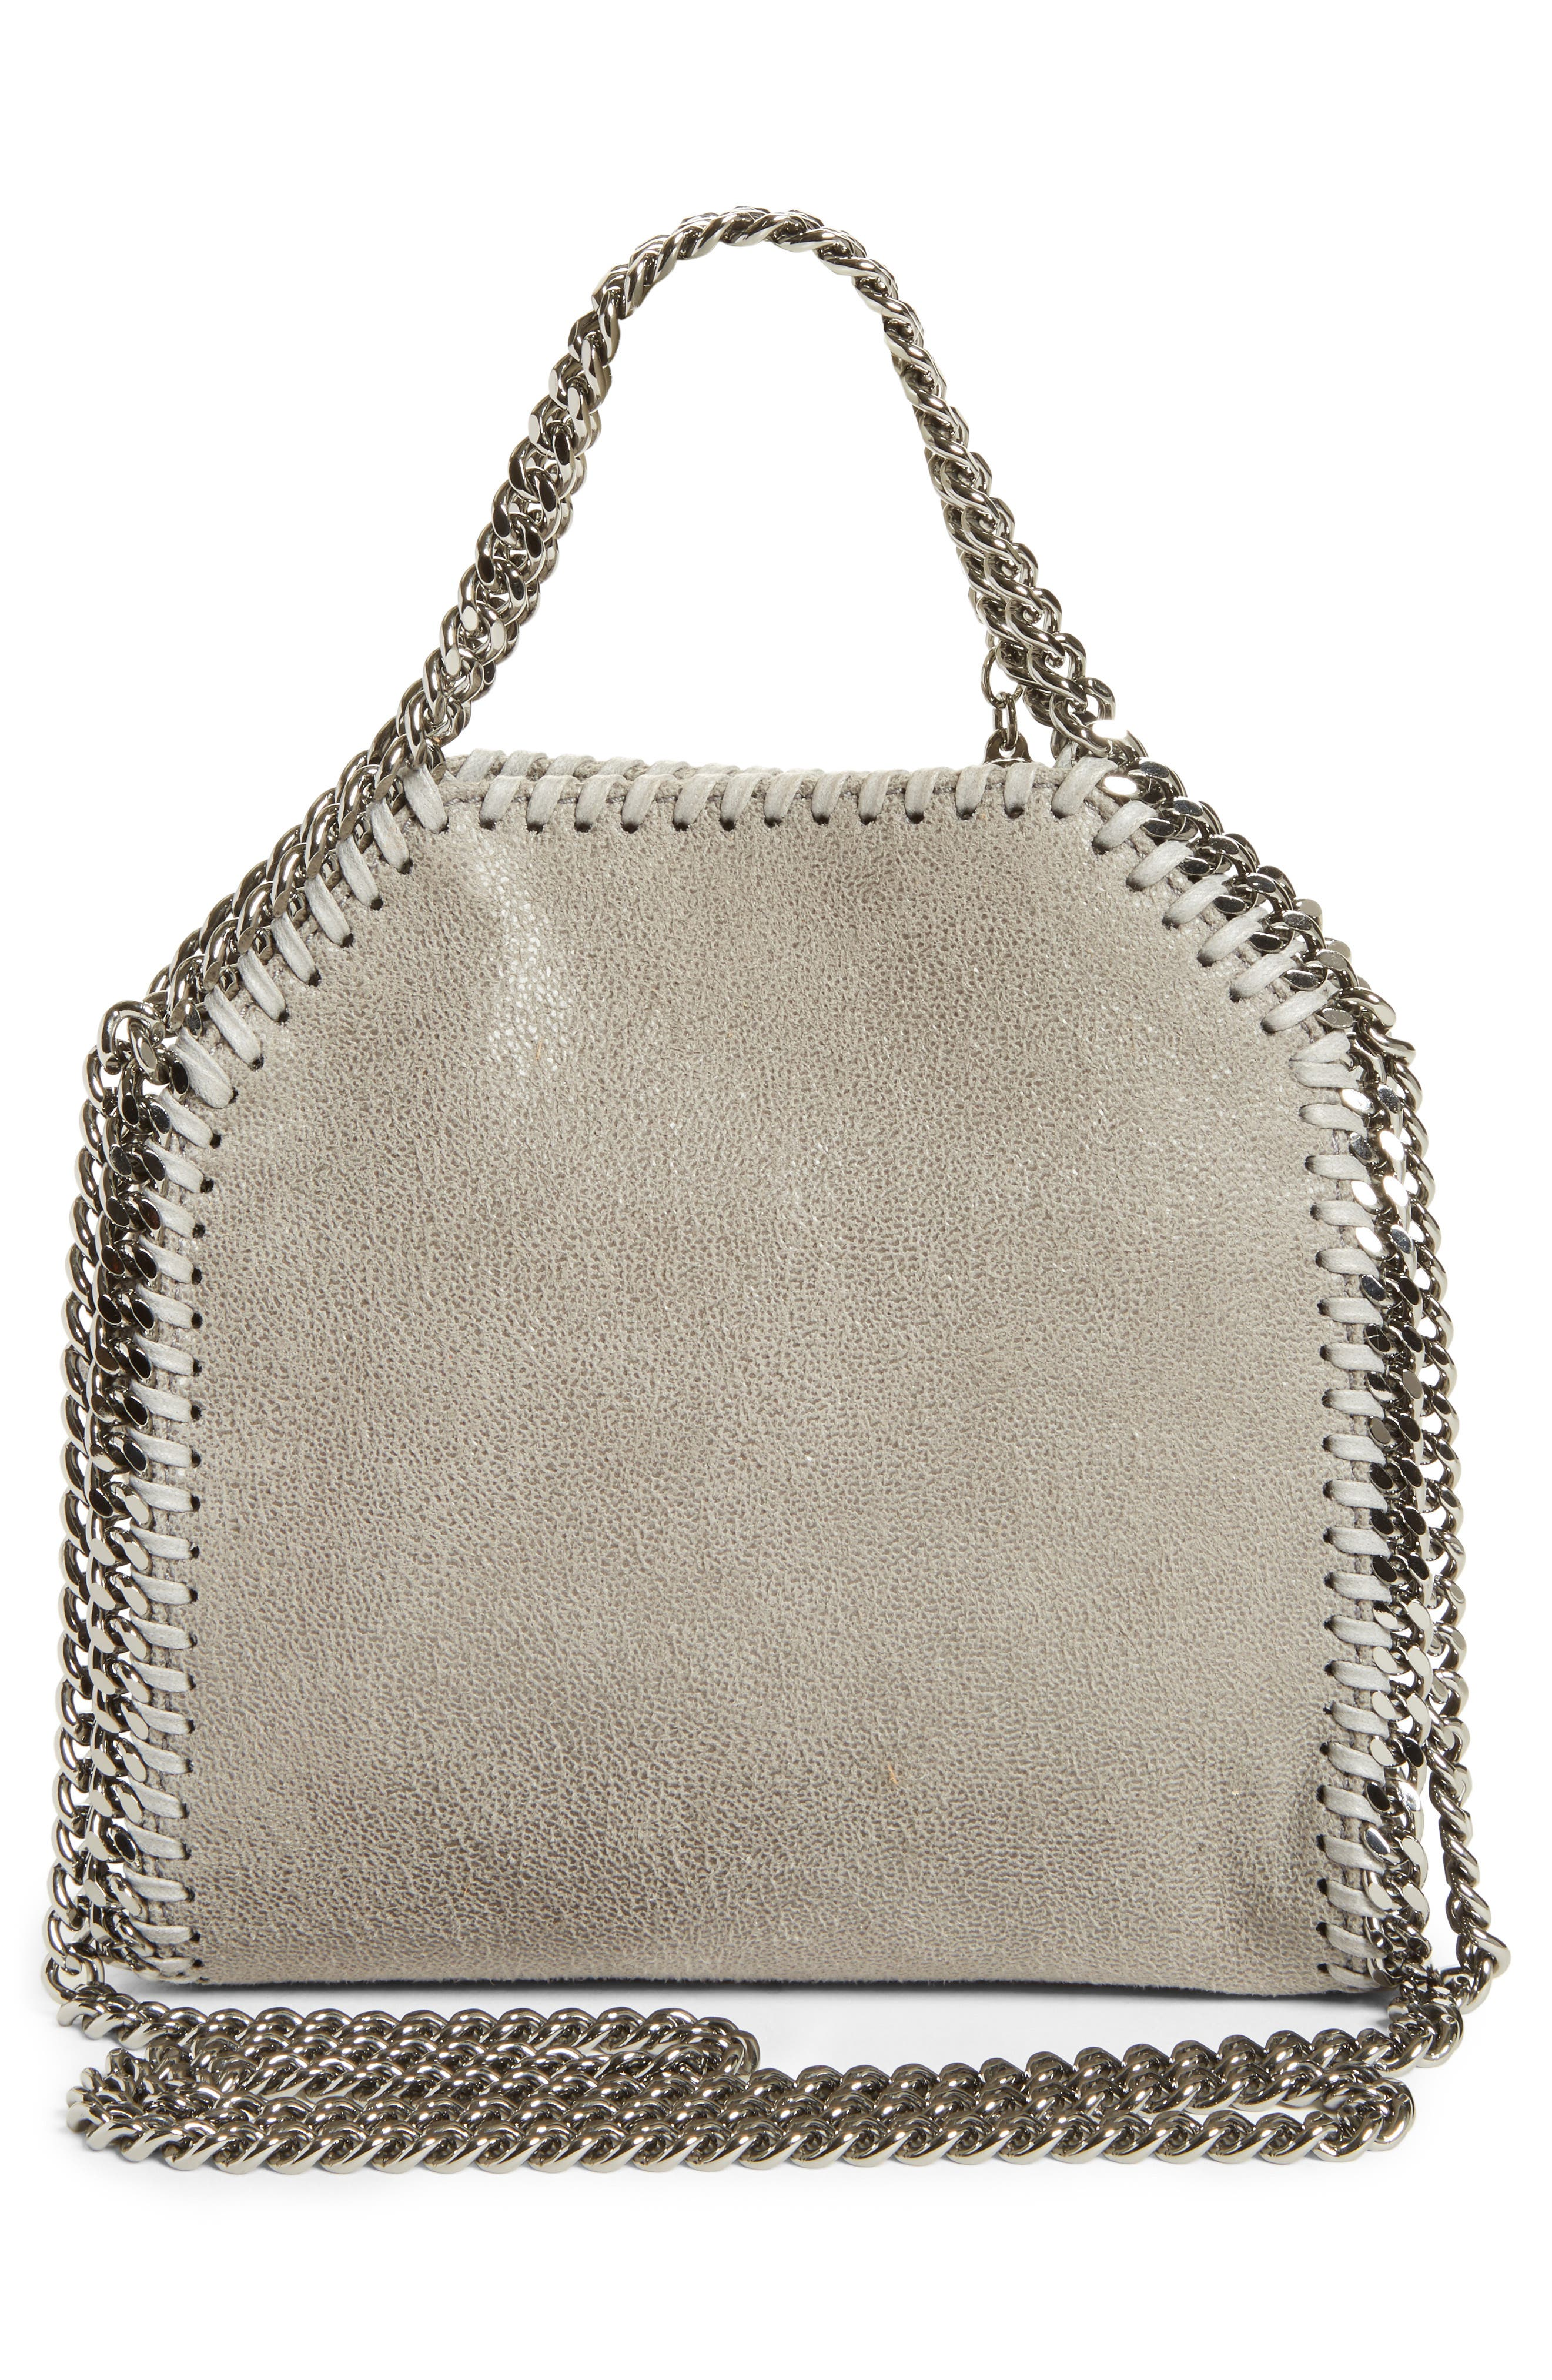 STELLA MCCARTNEY, 'Tiny Falabella' Faux Leather Crossbody Bag, Alternate thumbnail 3, color, 053